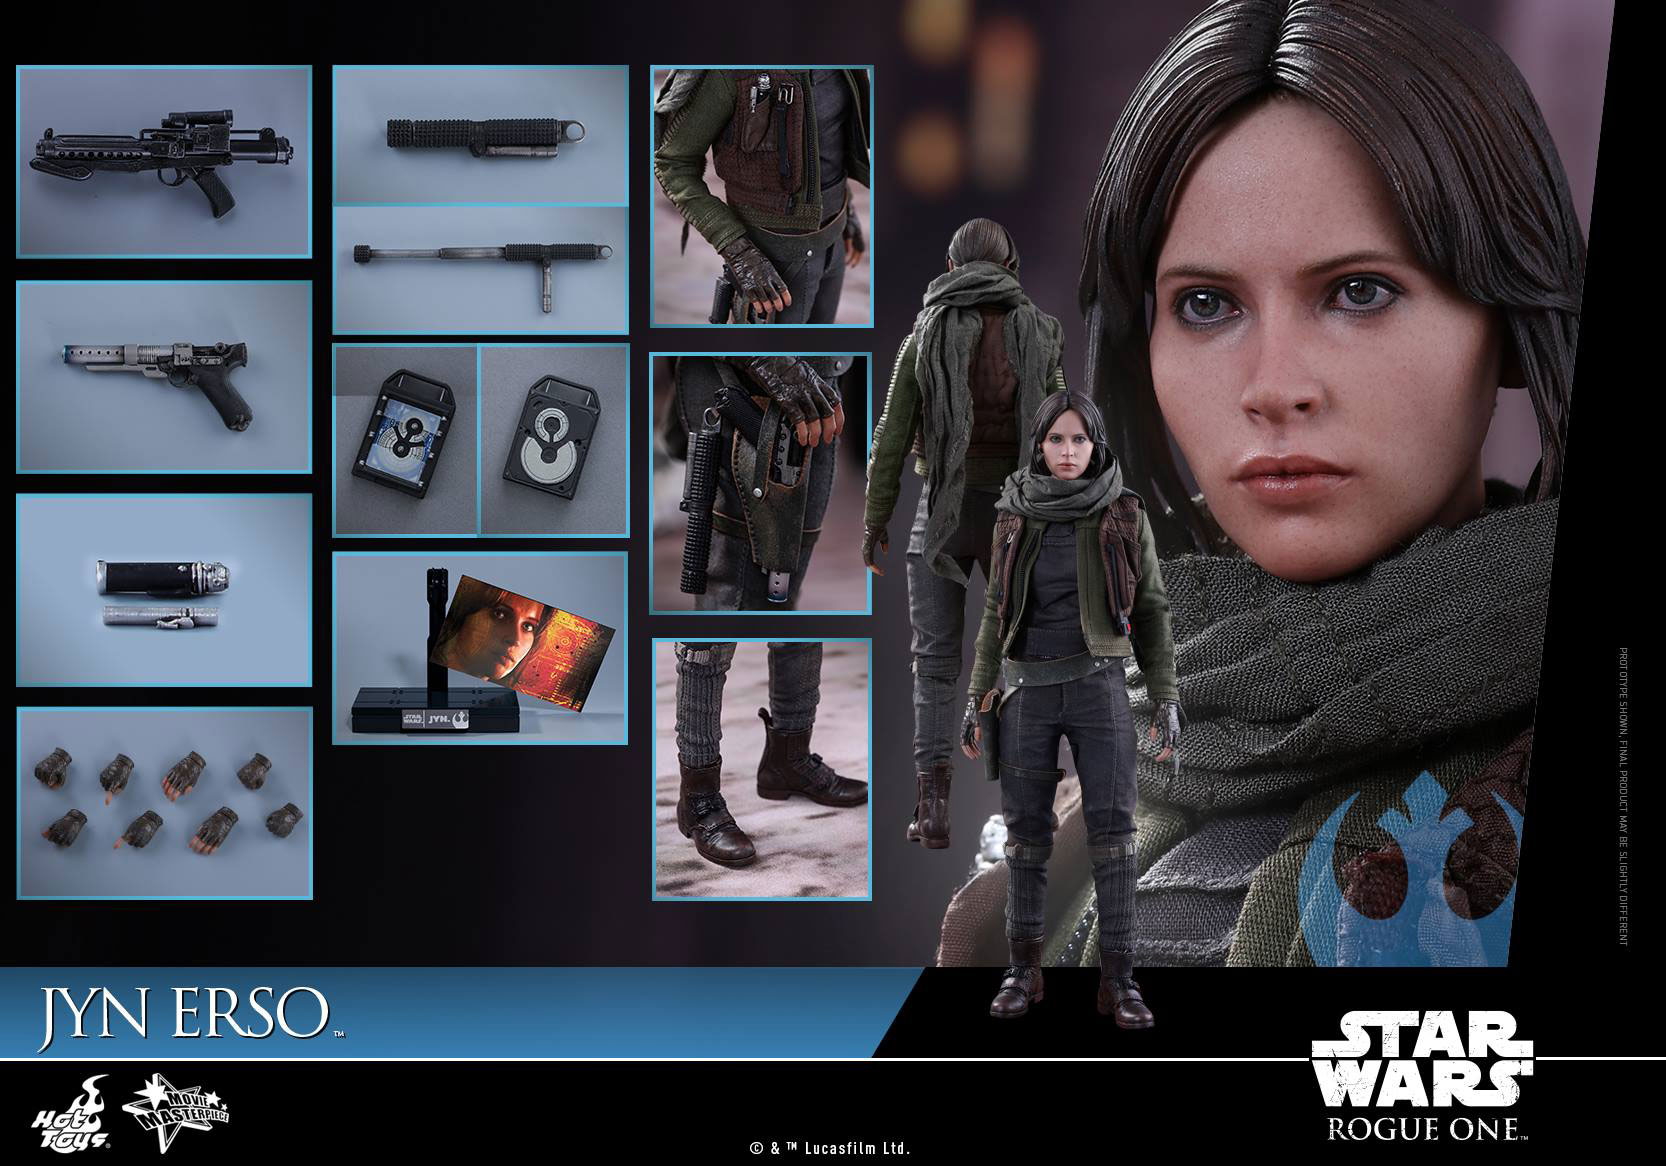 hot-toys-star-wars-rogue-one-jyn-erso-figure-10